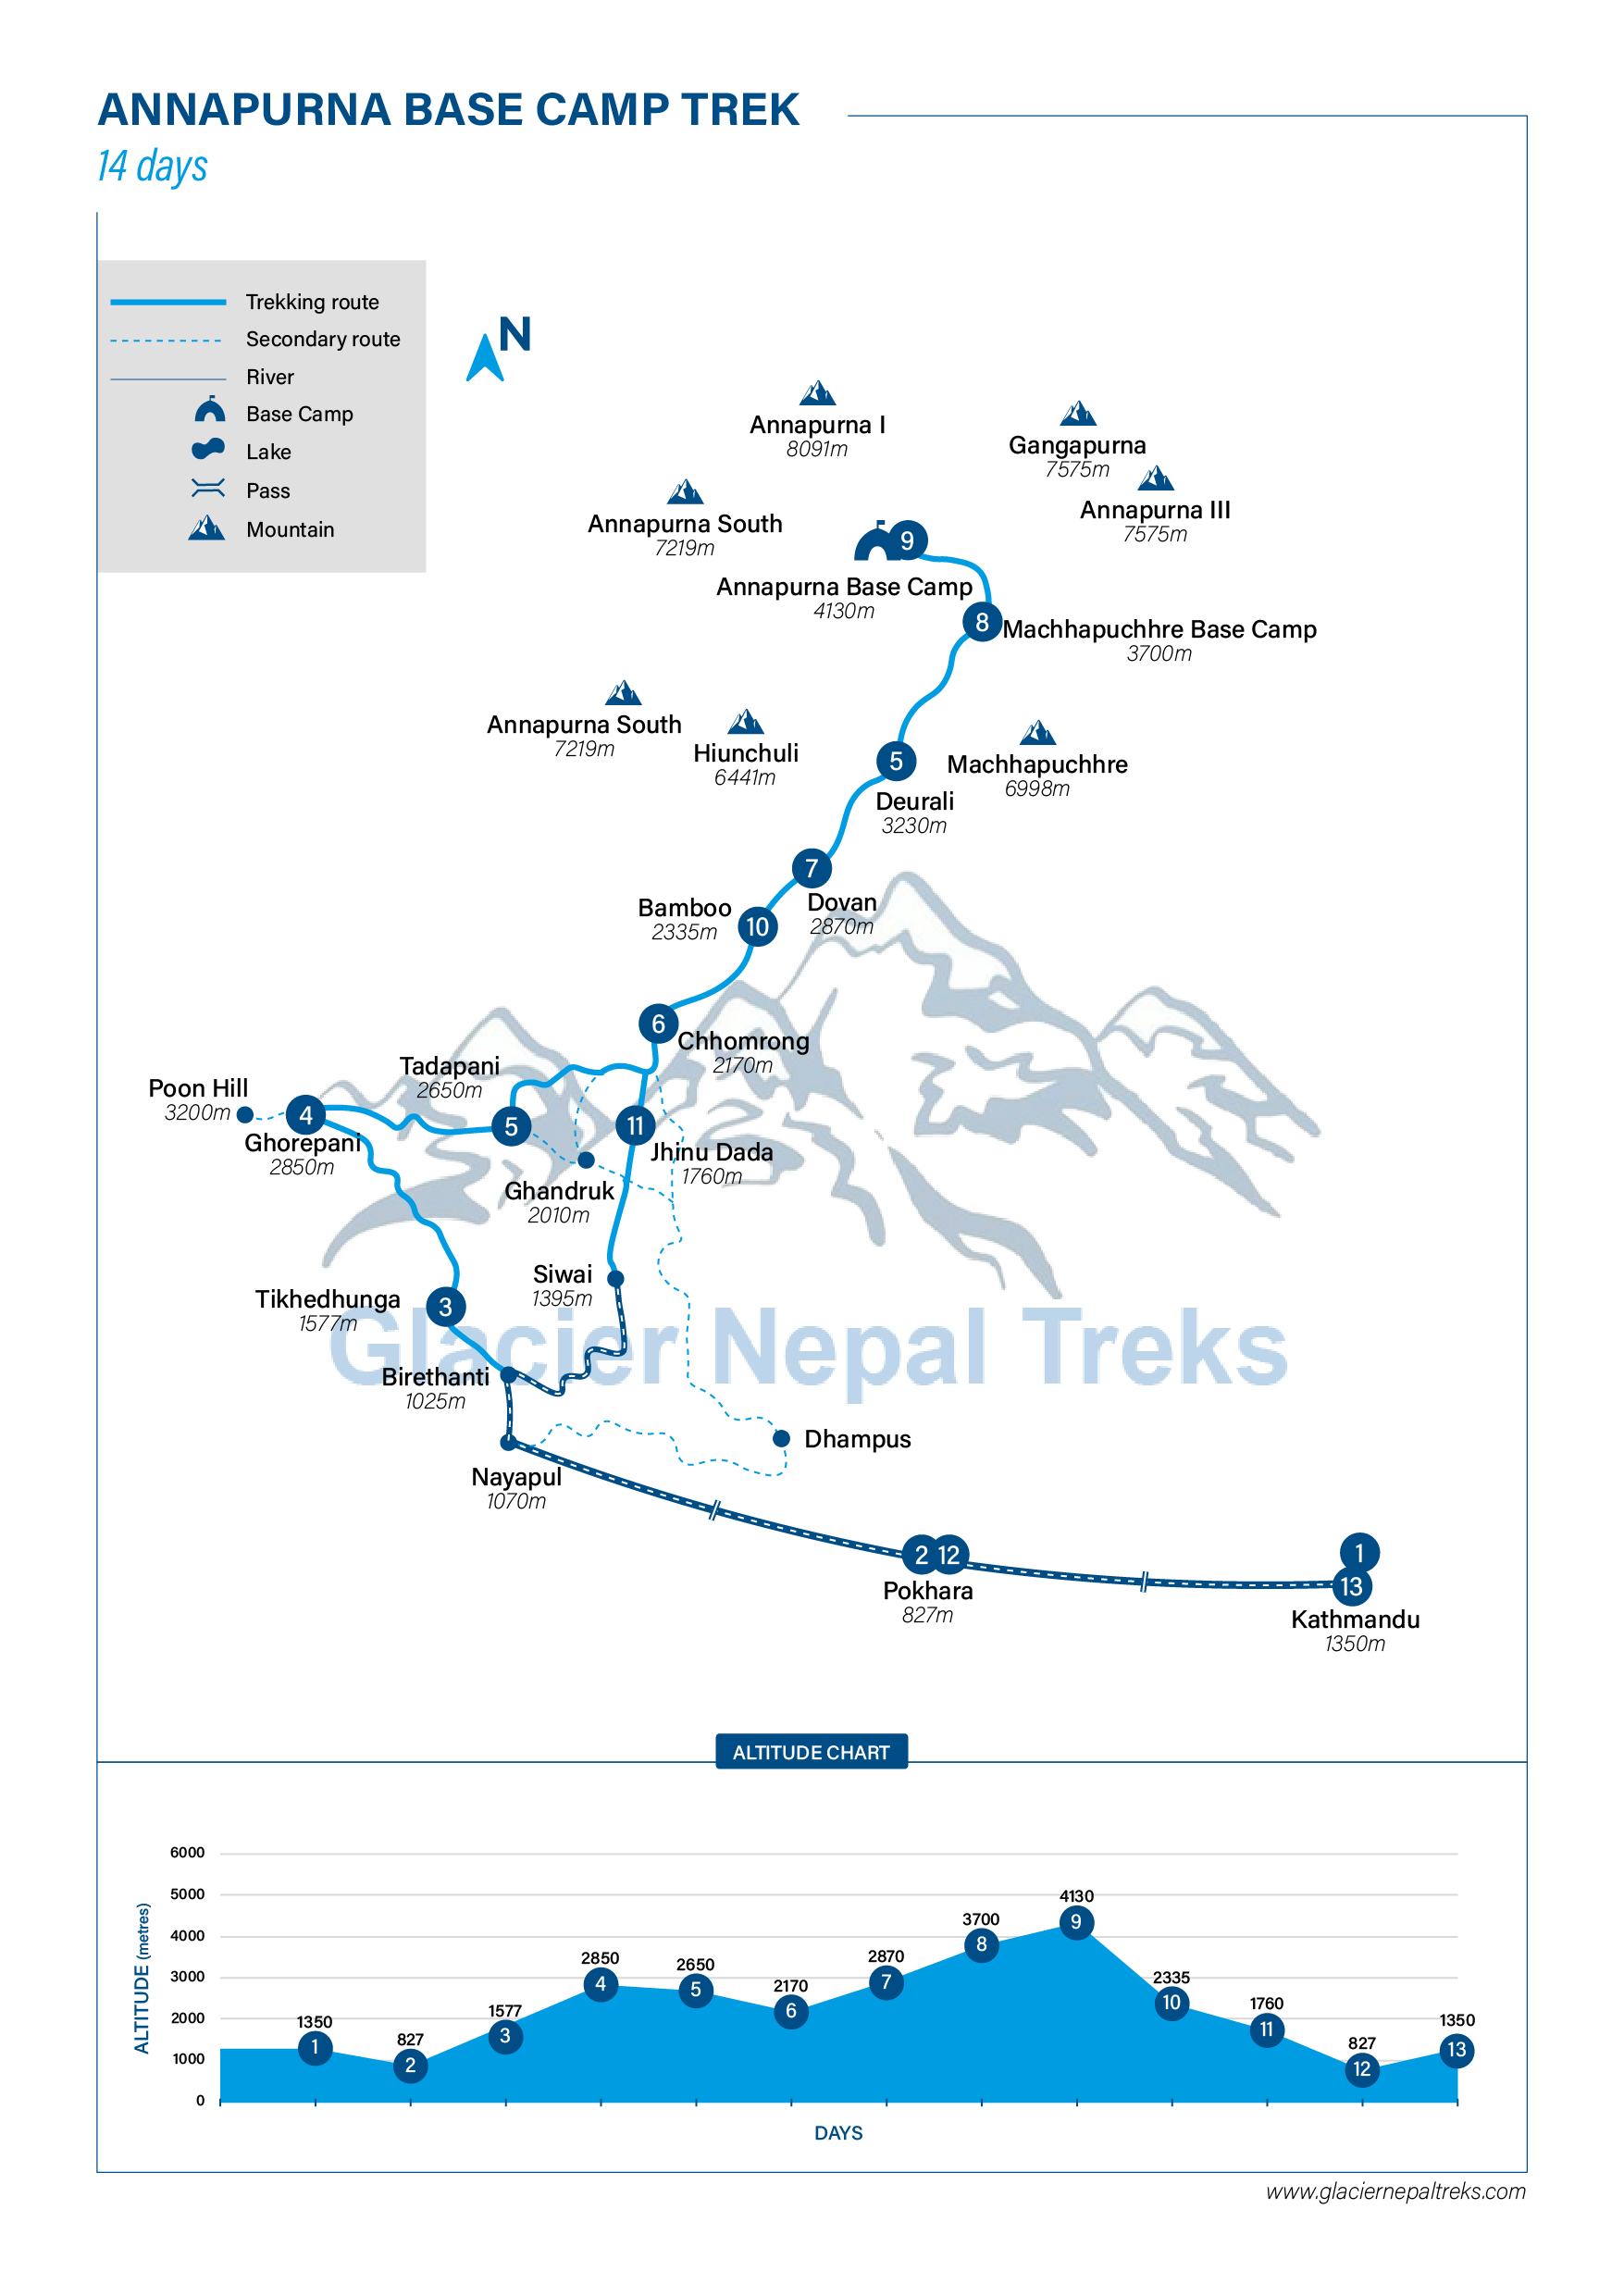 Route Map for Annapurna Base Camp Trek | Glacier Nepal